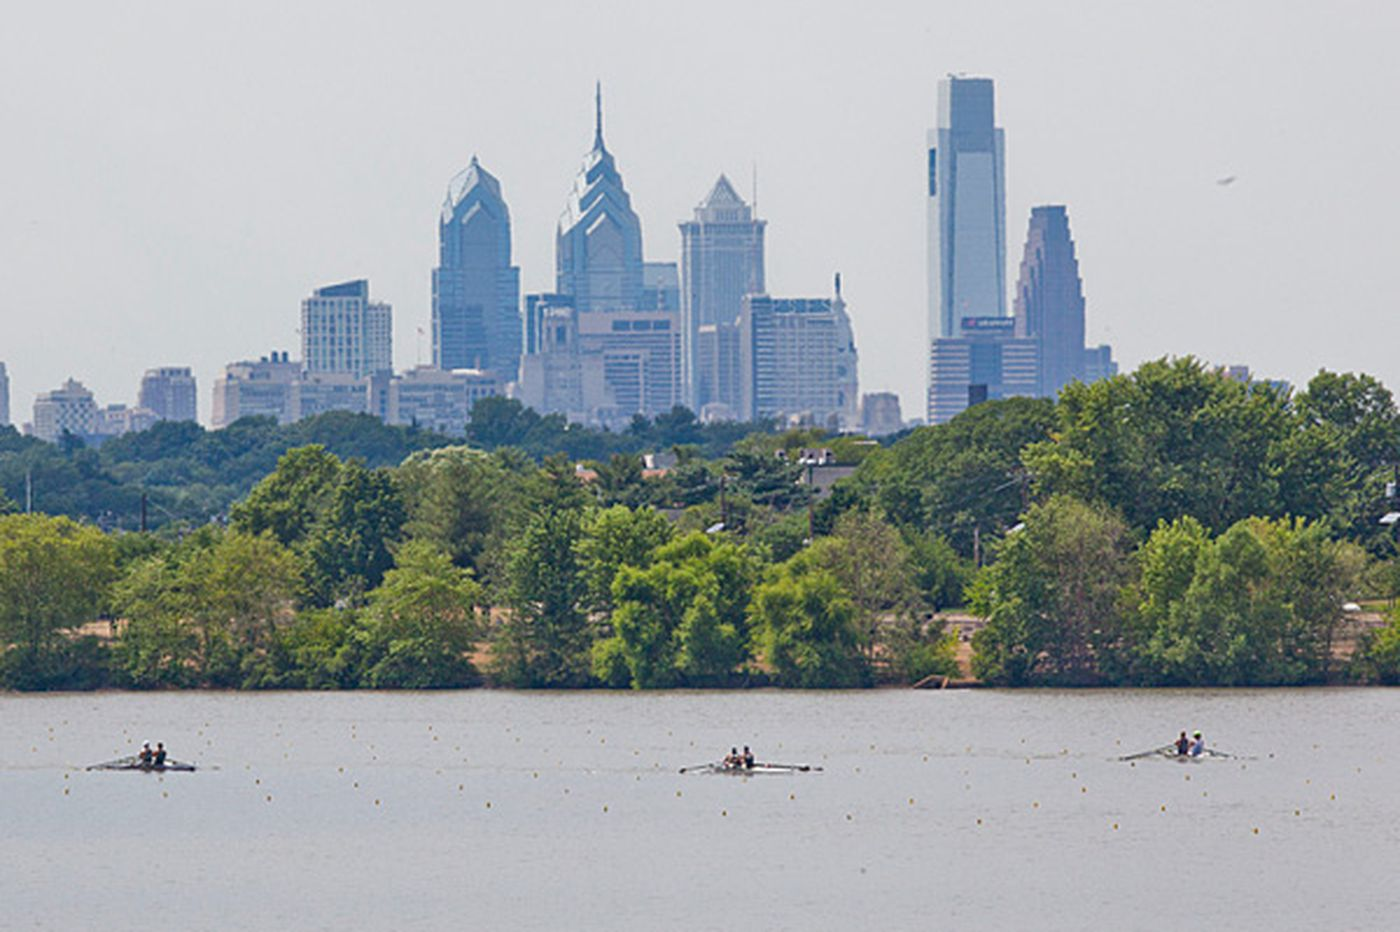 PhillyInc: Philadelphia has gained much, but not jobs